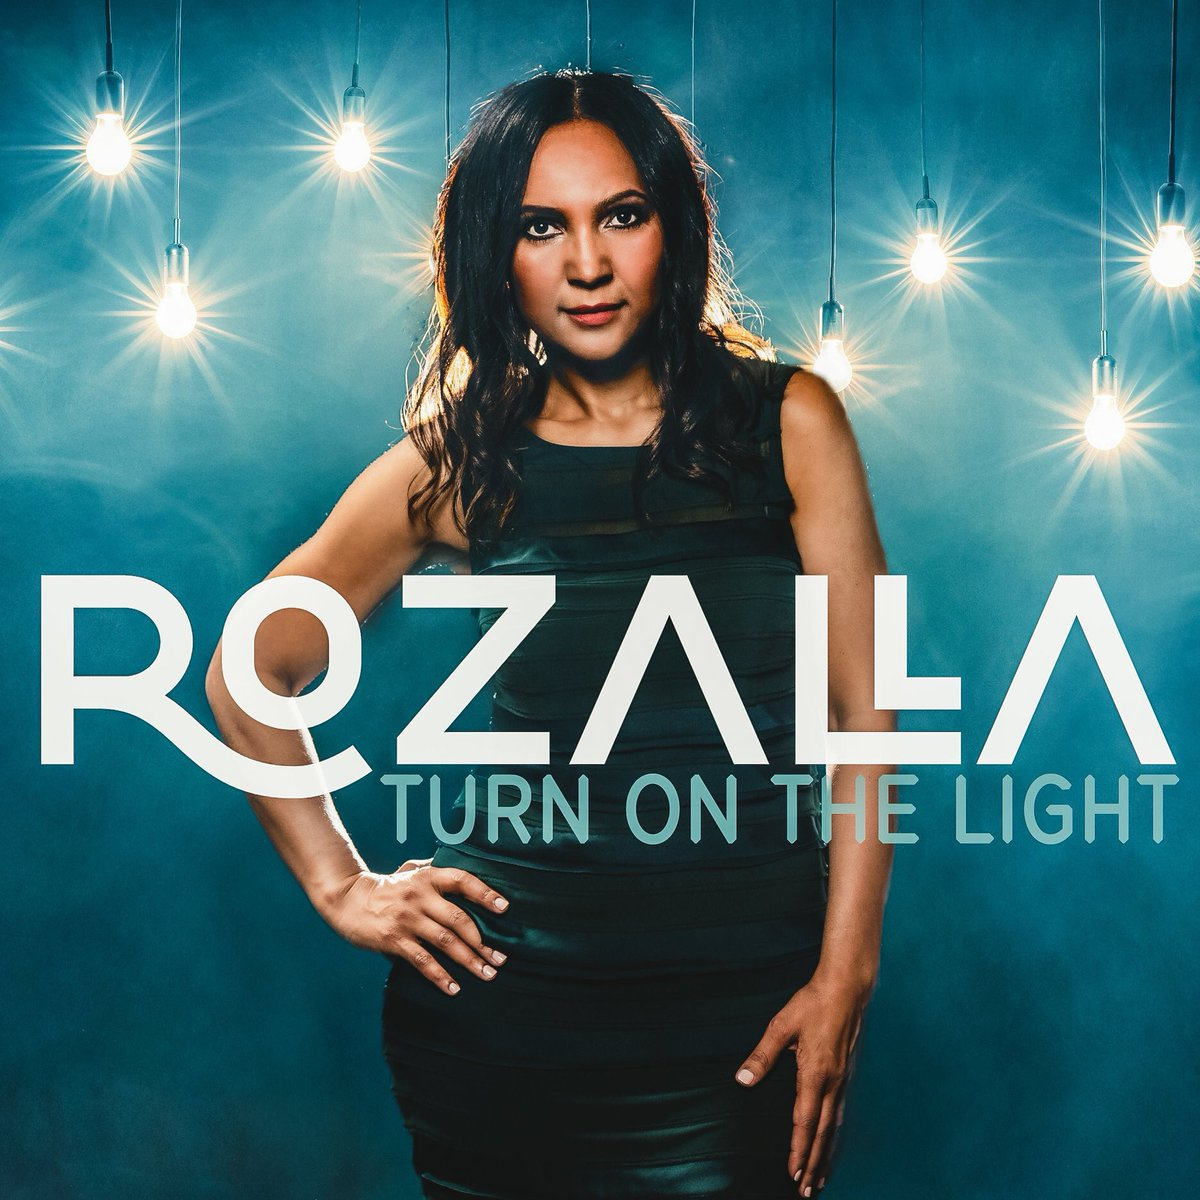 Image result for rozalla turn on the light